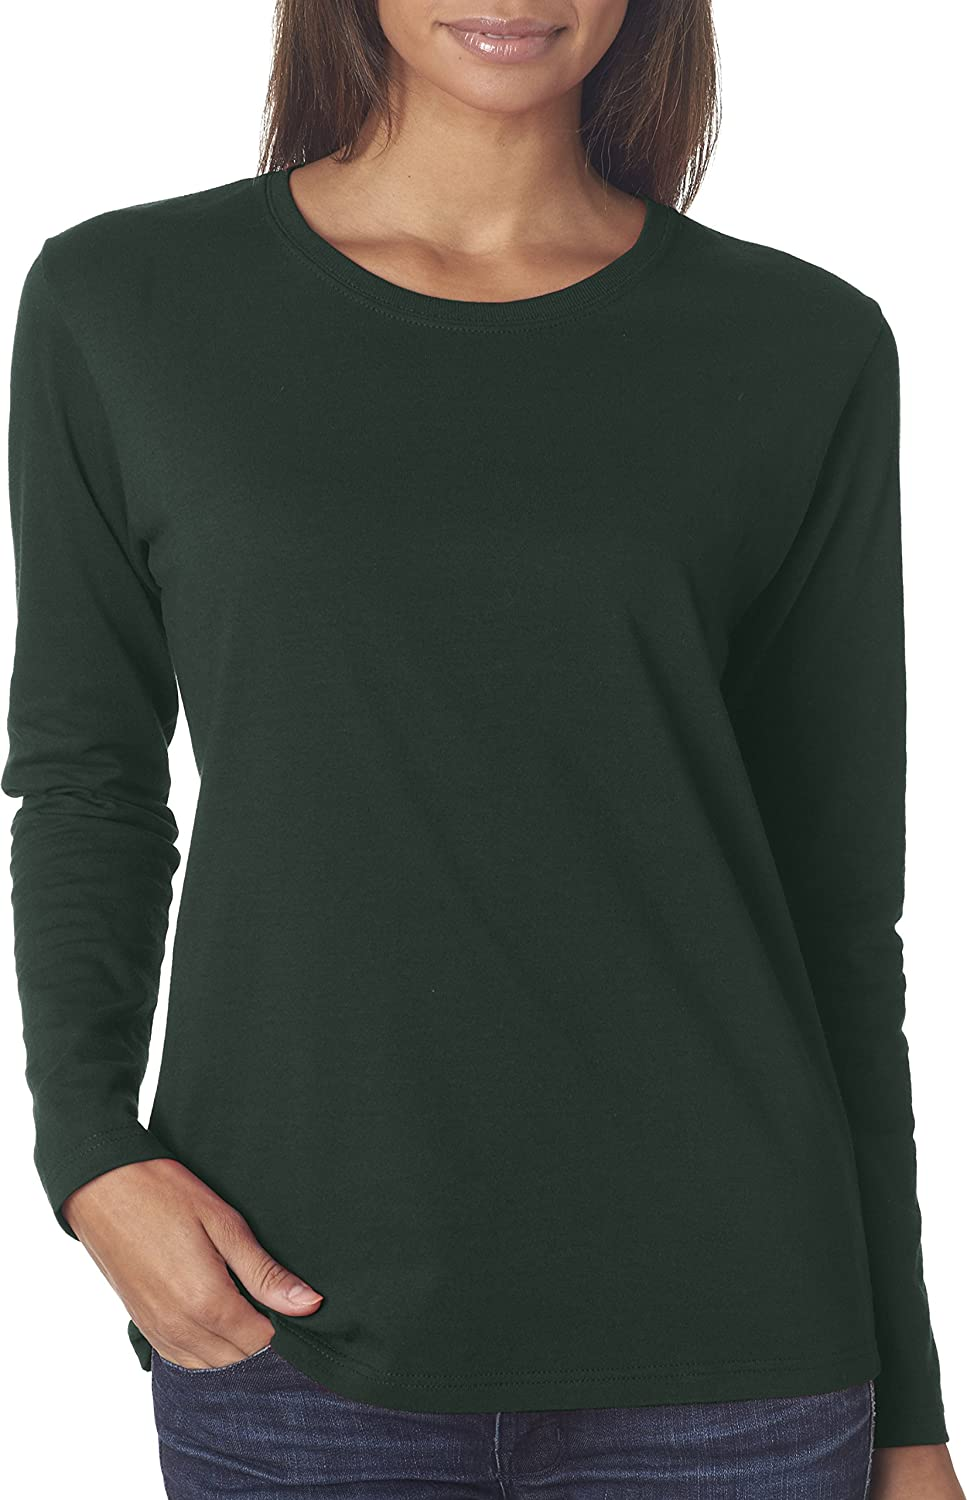 Amazon.com: 5400L Gildan Missy Fit Heavy Cotton Fit Long-Sleeve T ...